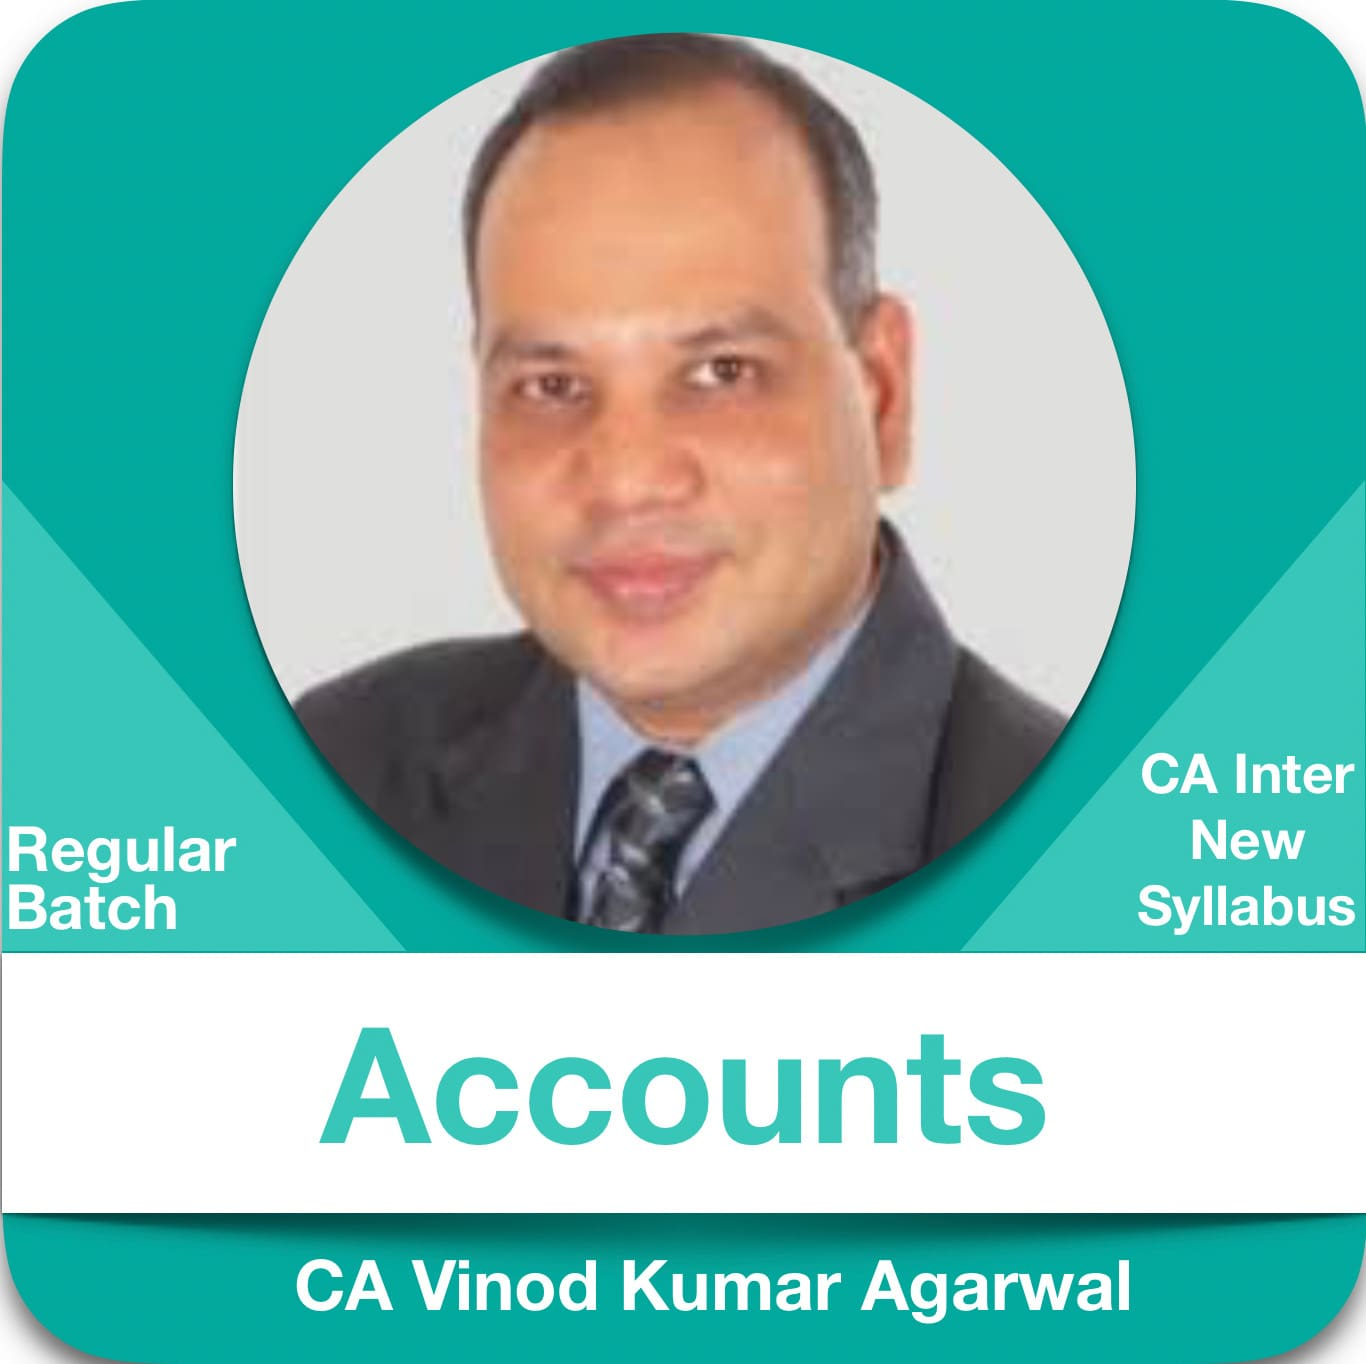 Accounts (1.2 & 3 Views) Regular Batch in Hindi